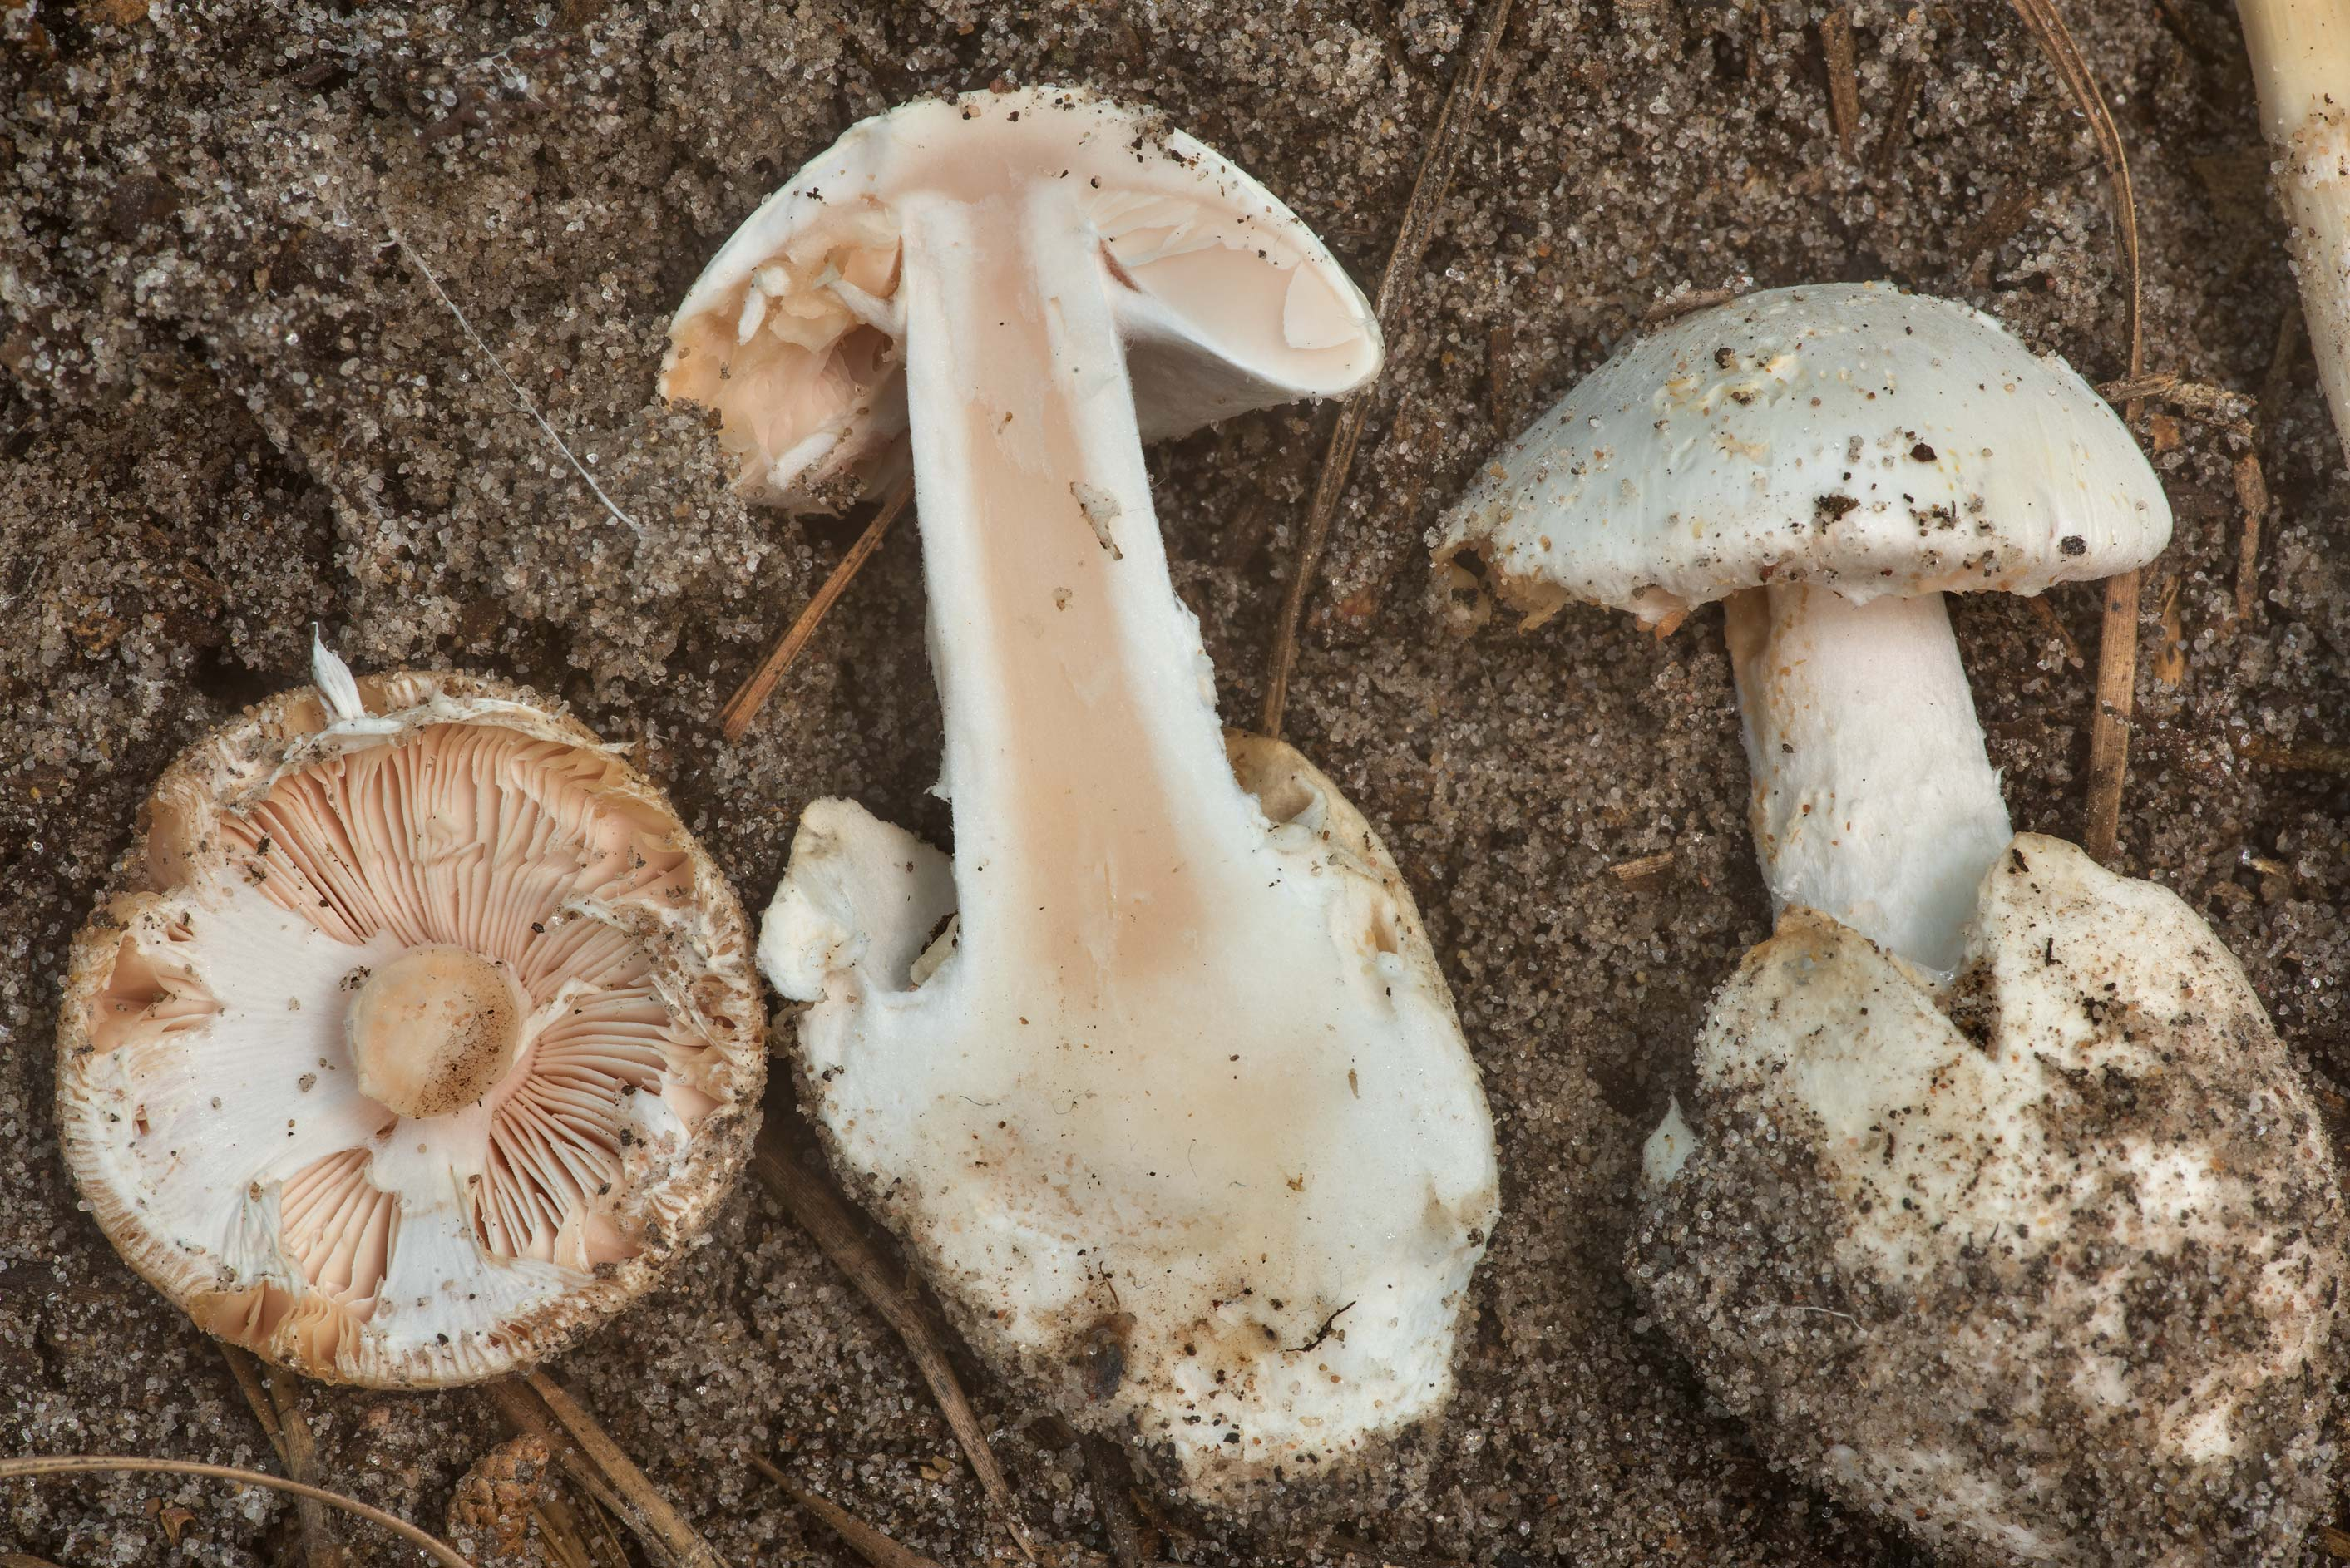 Dissected white Amanita mushrooms with reddish...National Forest near Richards. Texas